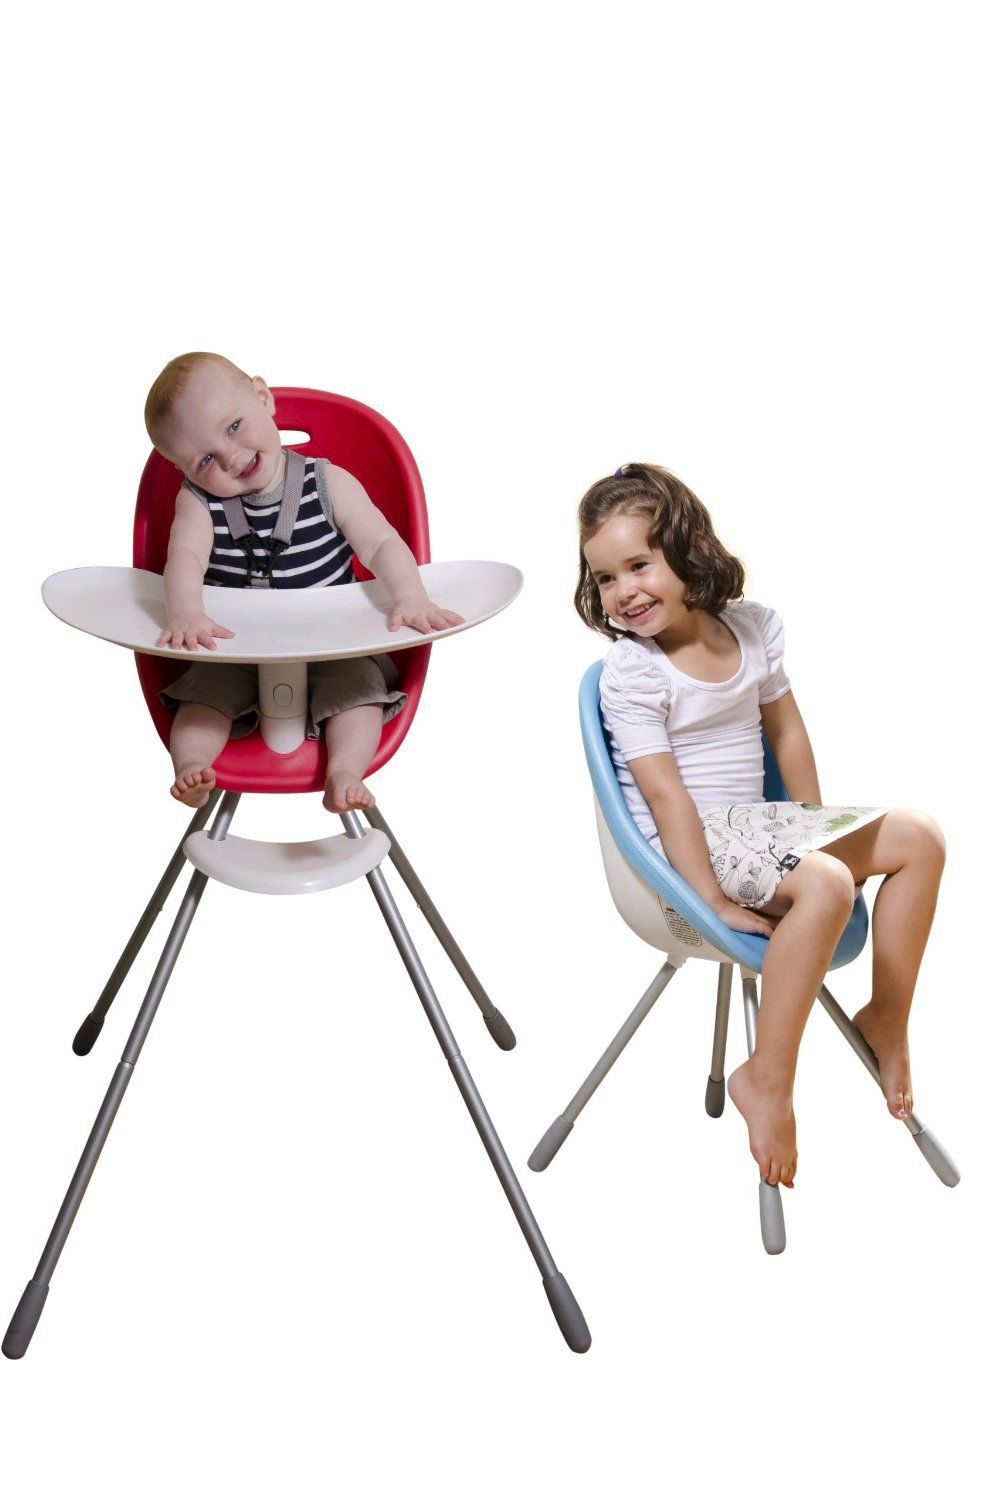 phil and teds poppy high chair - high chairs for small spaces | High ...